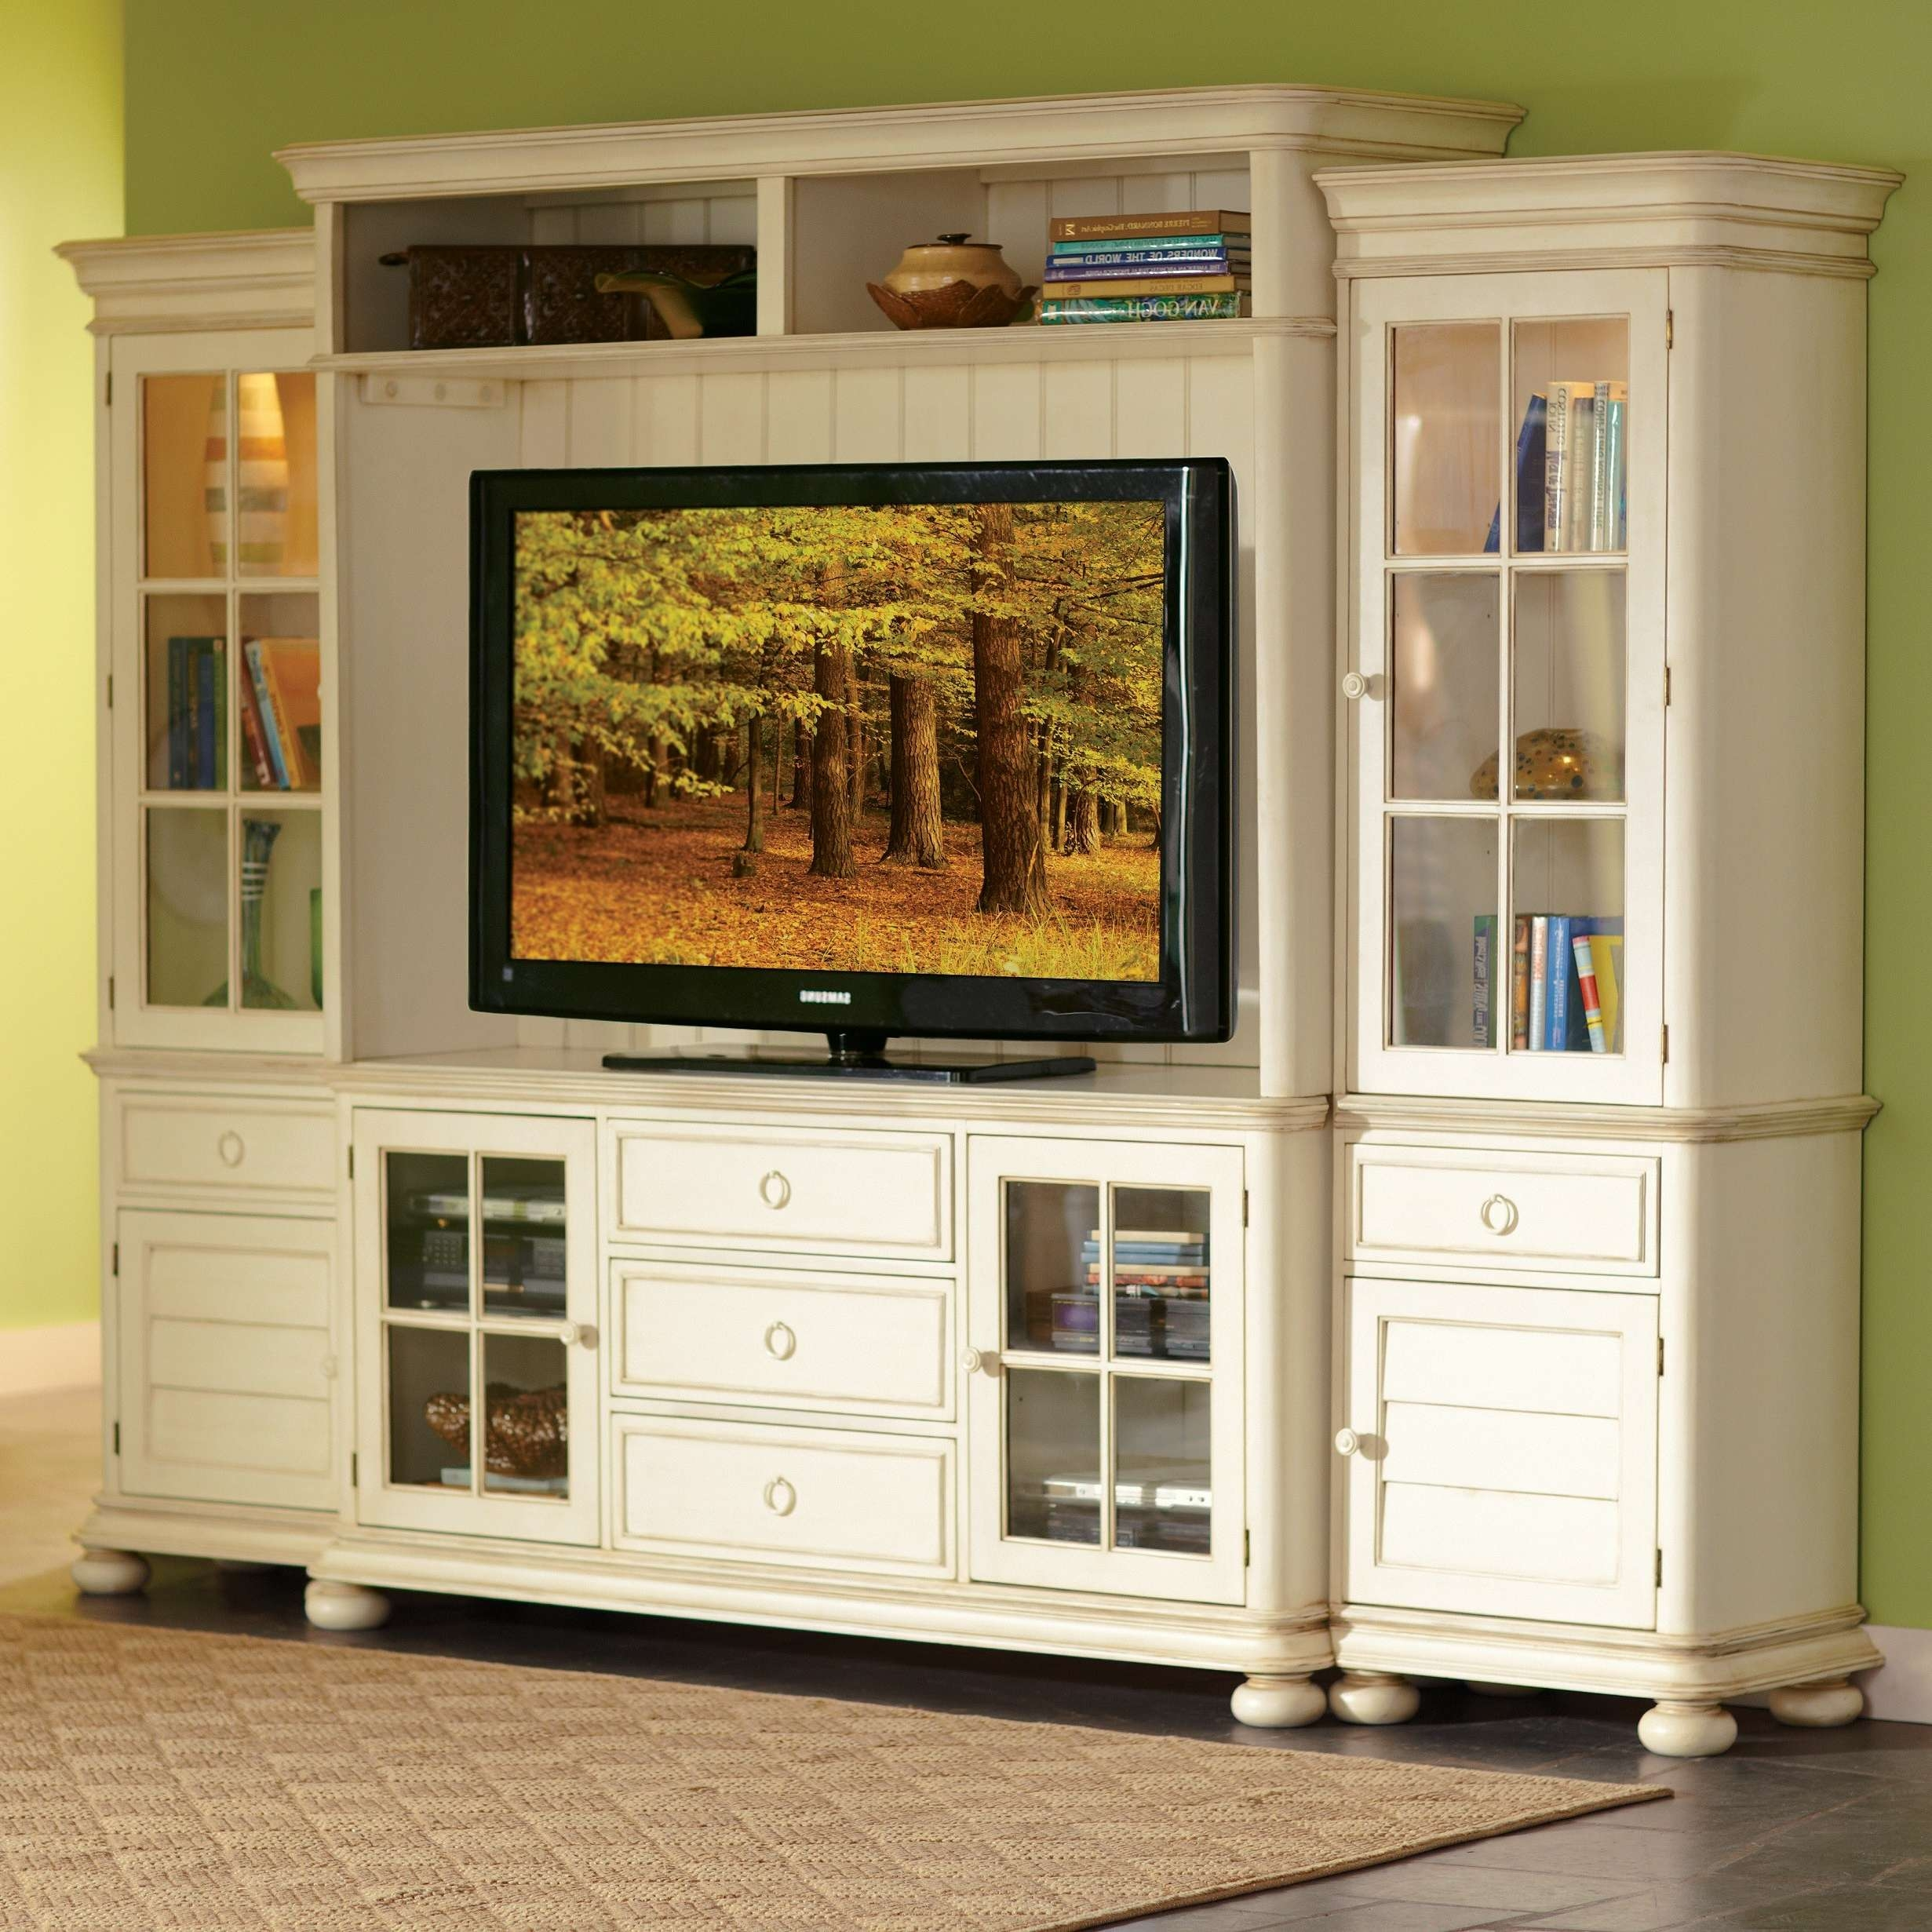 Best collection of enclosed tv cabinets with doors